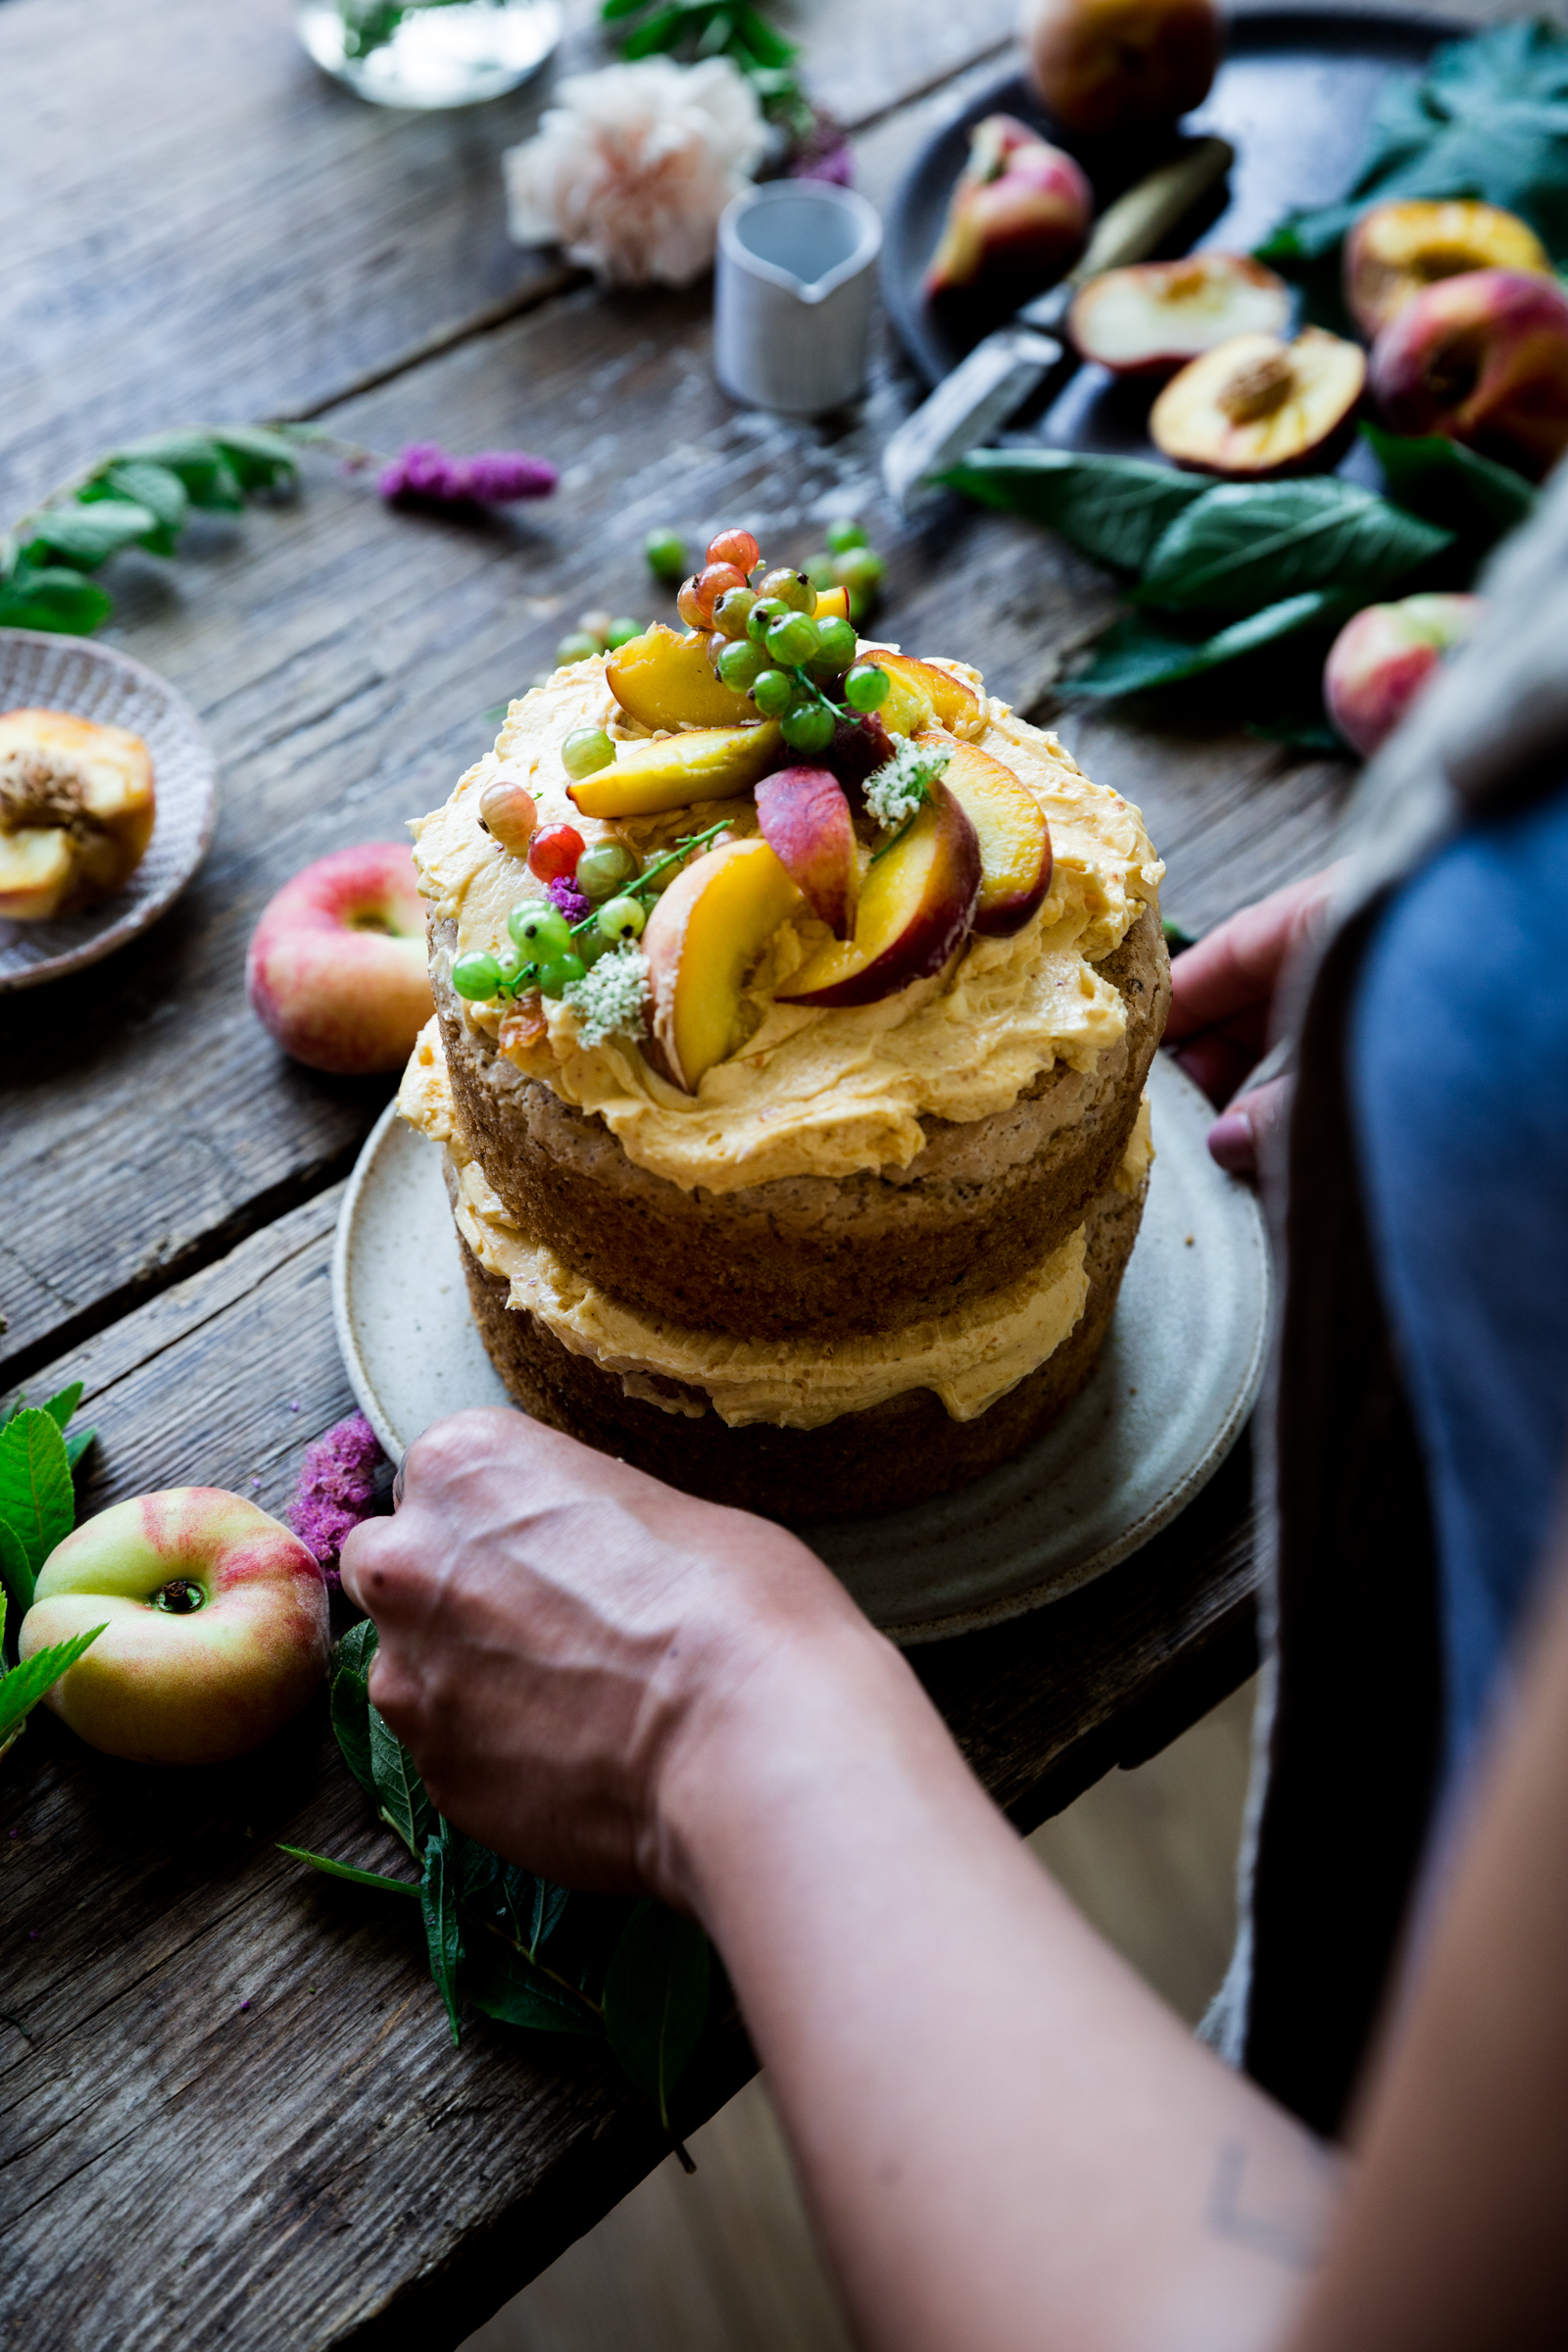 Online food styling and food photography e-course - The Little Plantation